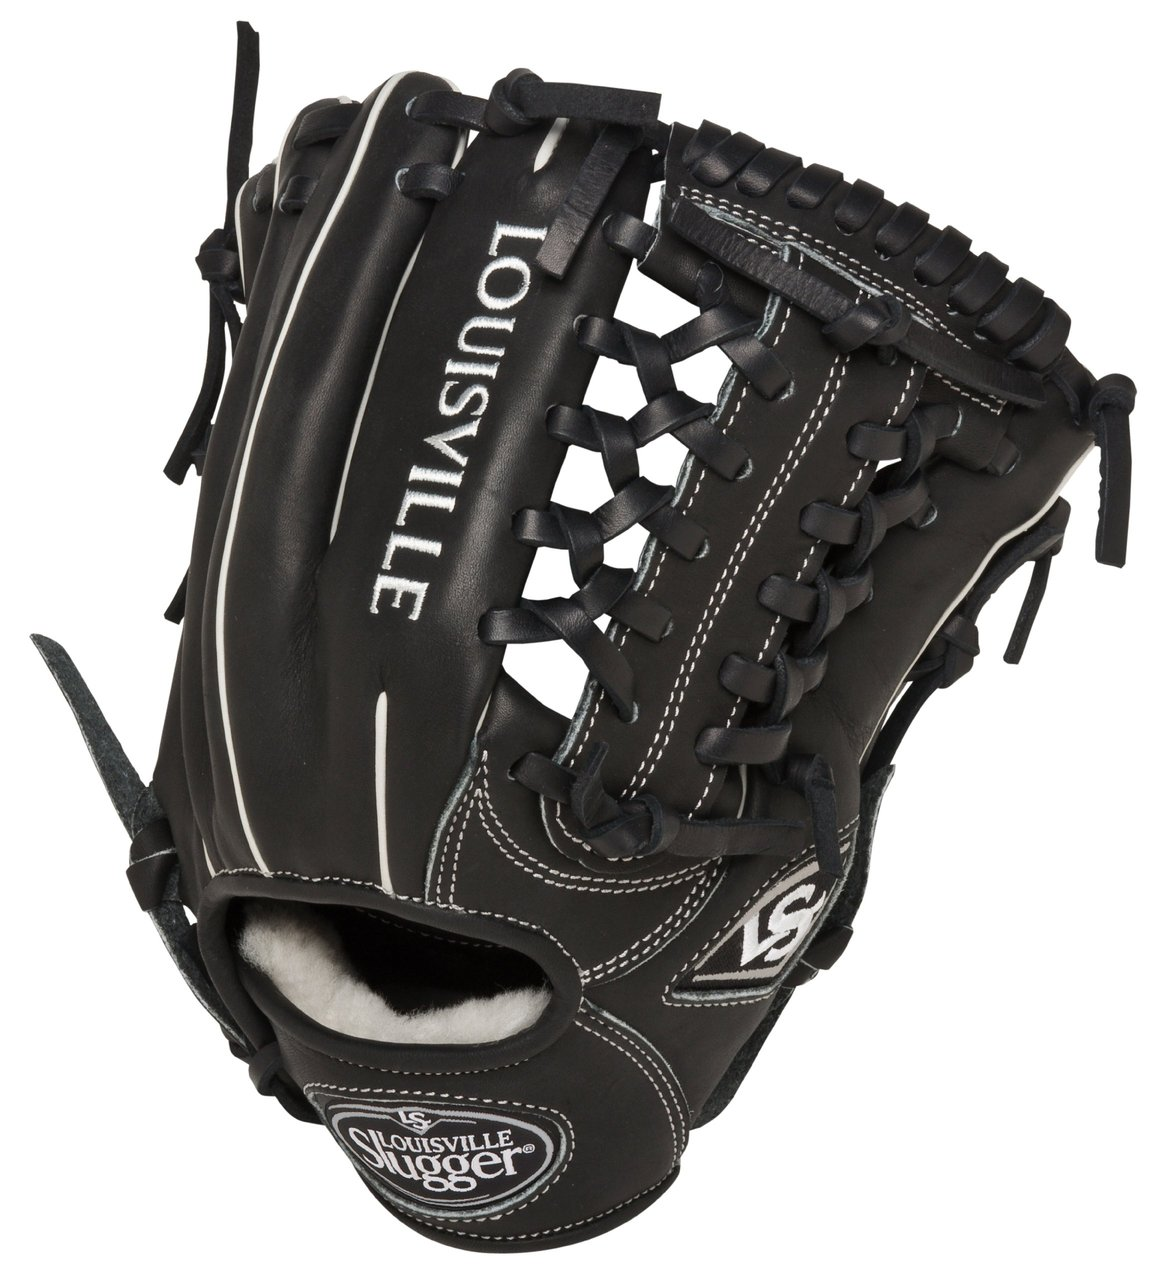 louisville-slugger-pro-flare-11-5-inch-baseball-glove-right-handed-throw FGPF14-BK115-Right Handed Throw Louisville 044277006679 Louisville Slugger Pro Flare 11.5 inch Baseball Glove Right Handed Throw.